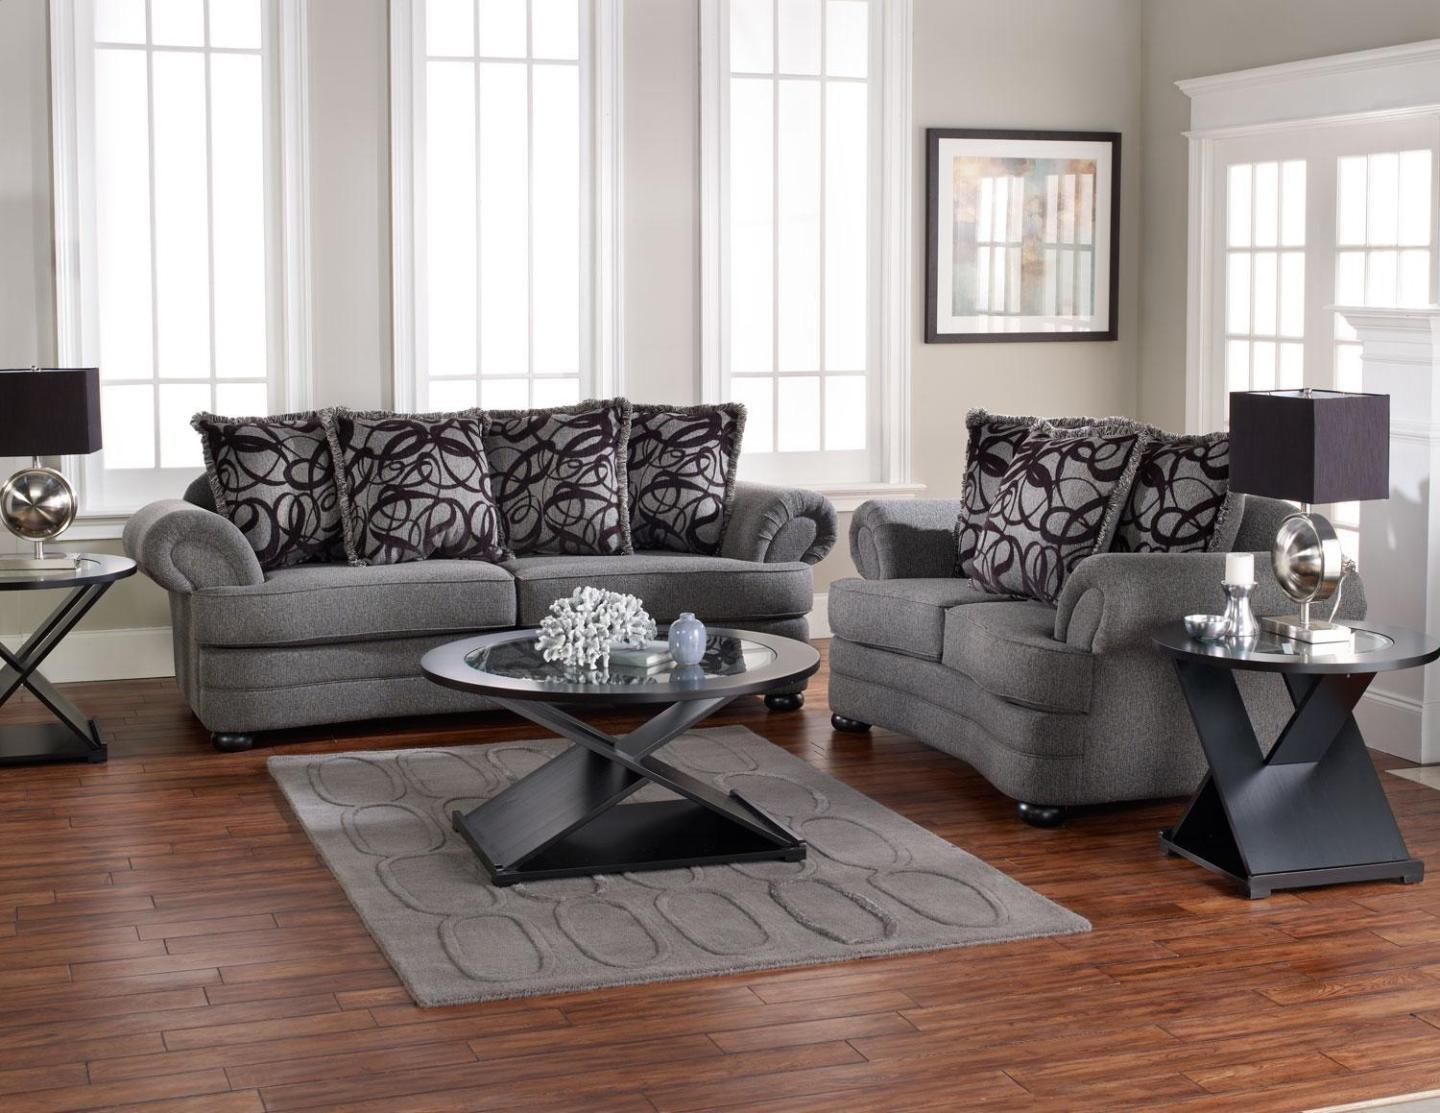 Image of: Sectional Recliner Couch